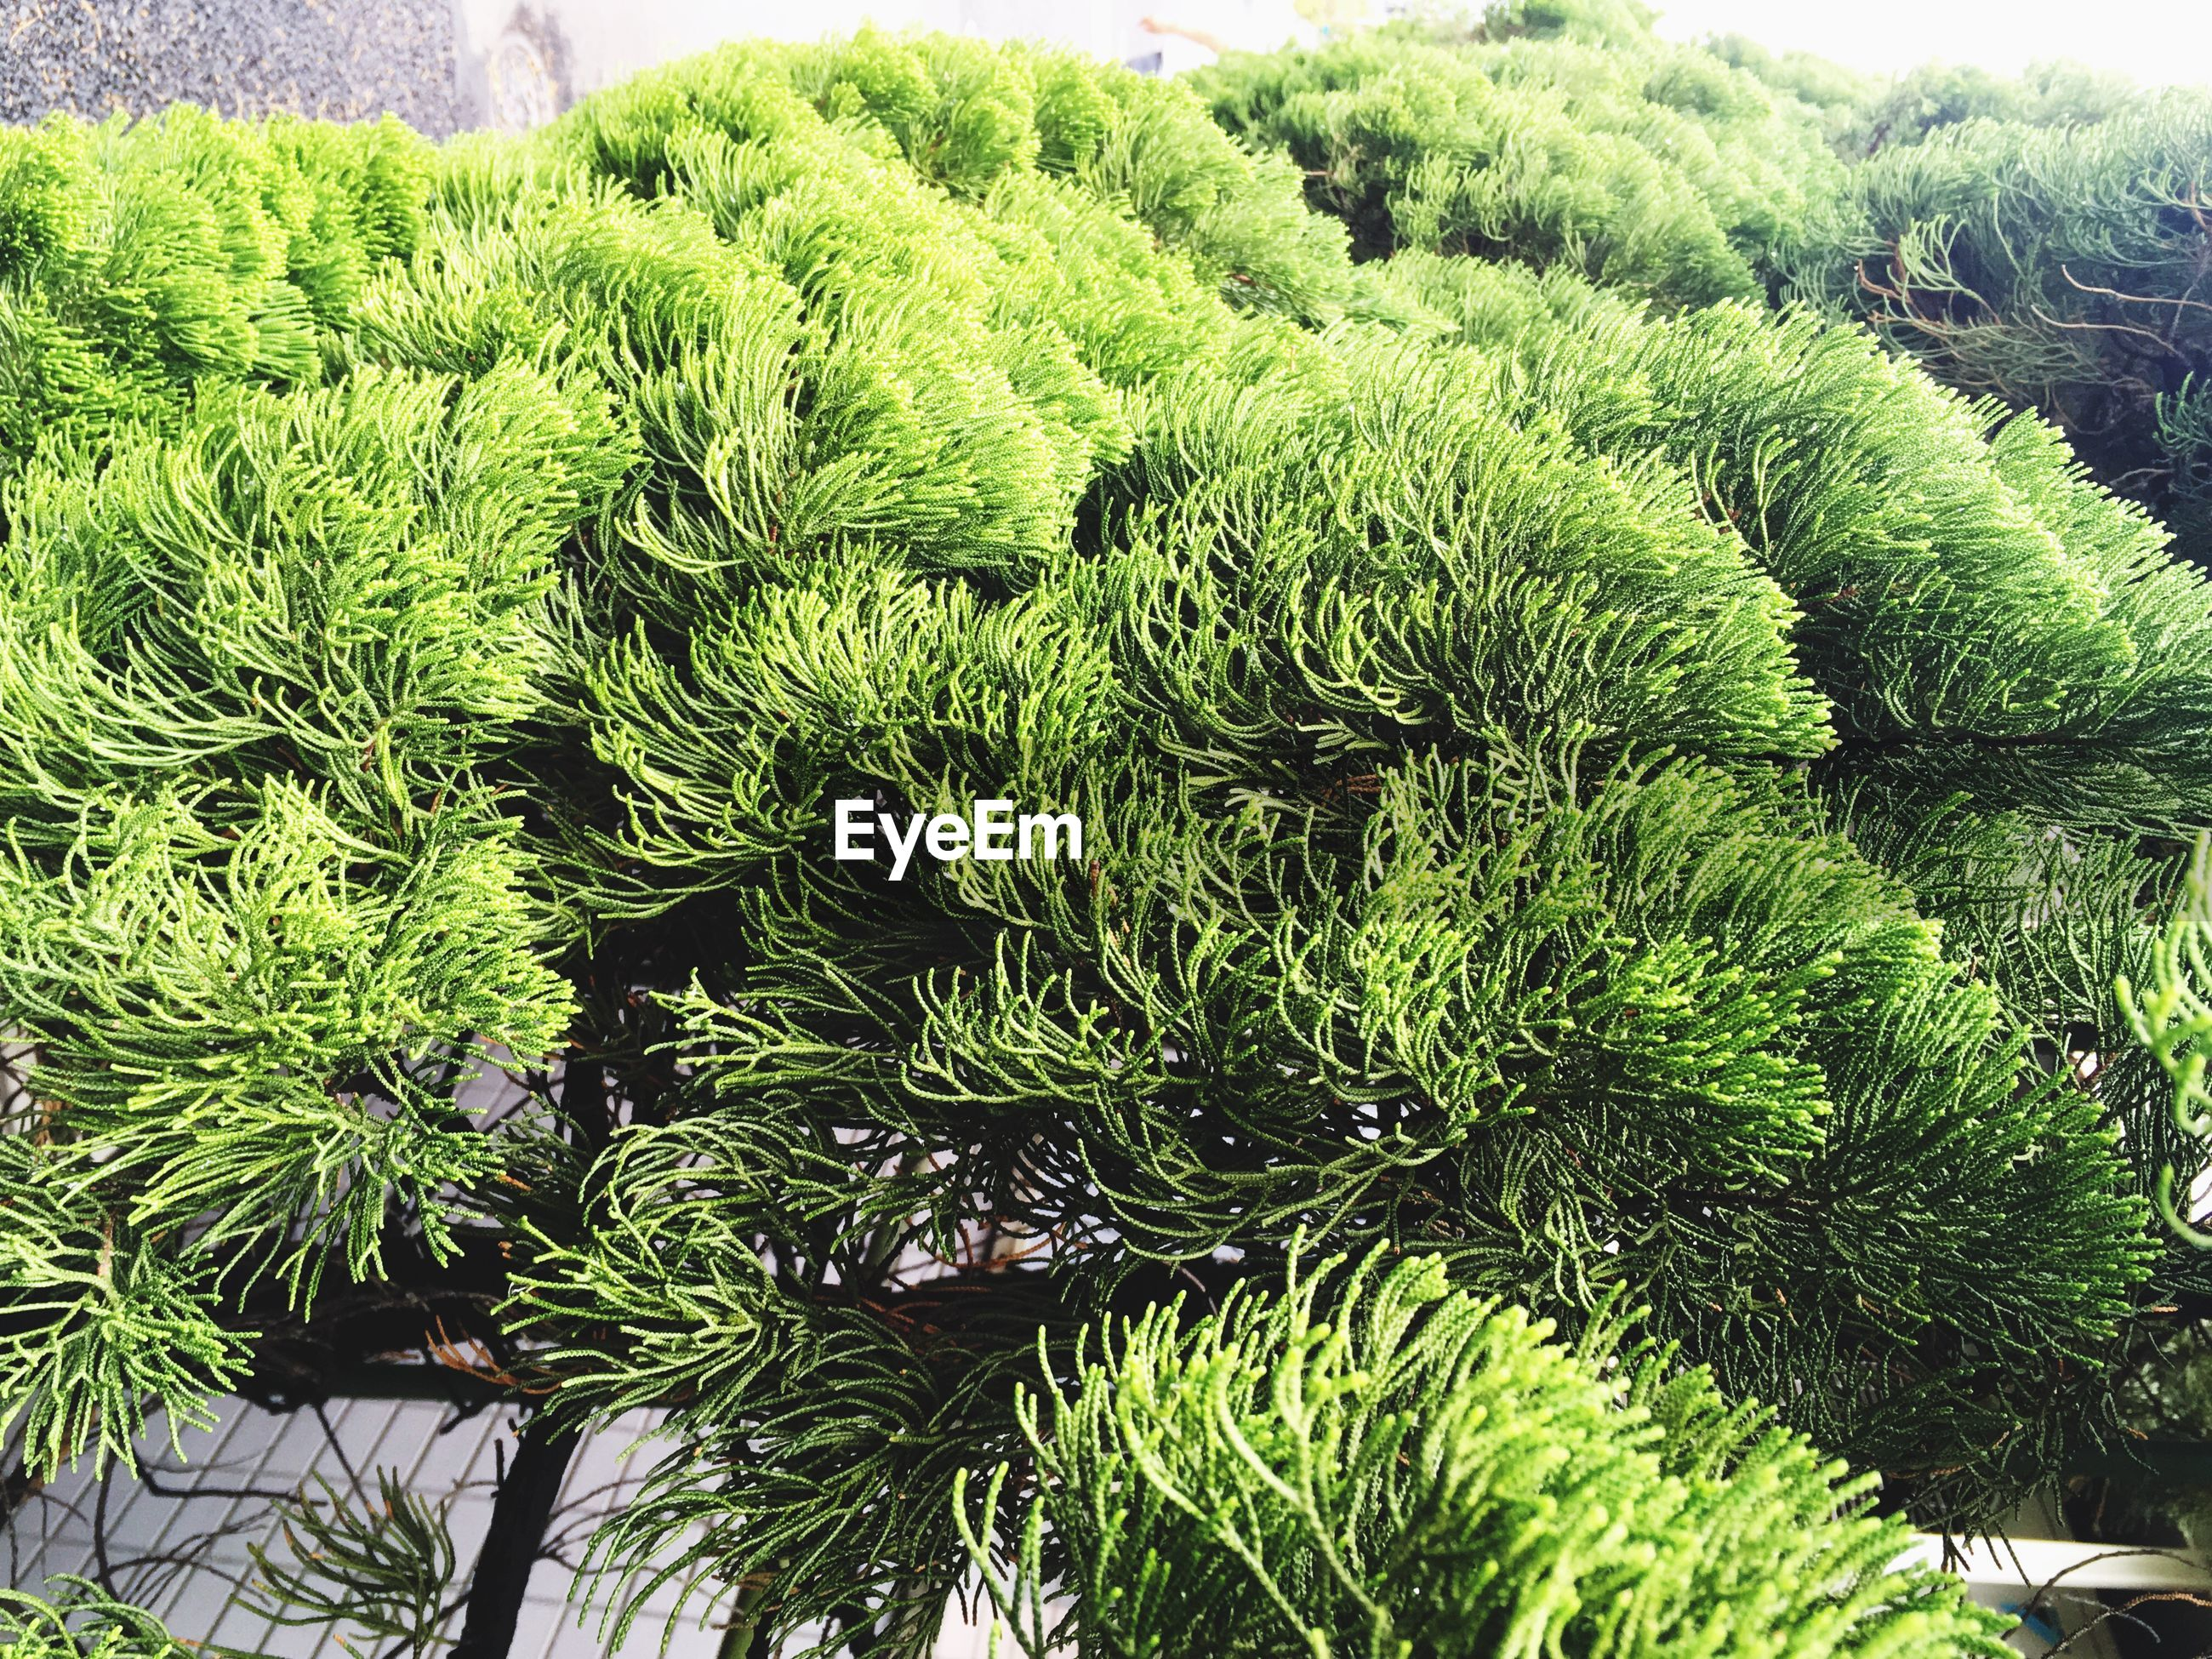 growth, green color, nature, close-up, detail, beauty in nature, plant, scenics, full frame, freshness, branch, day, green, tranquility, botany, fragility, outdoors, tranquil scene, lush foliage, plant life, no people, extreme close up, needle - plant part, non-urban scene